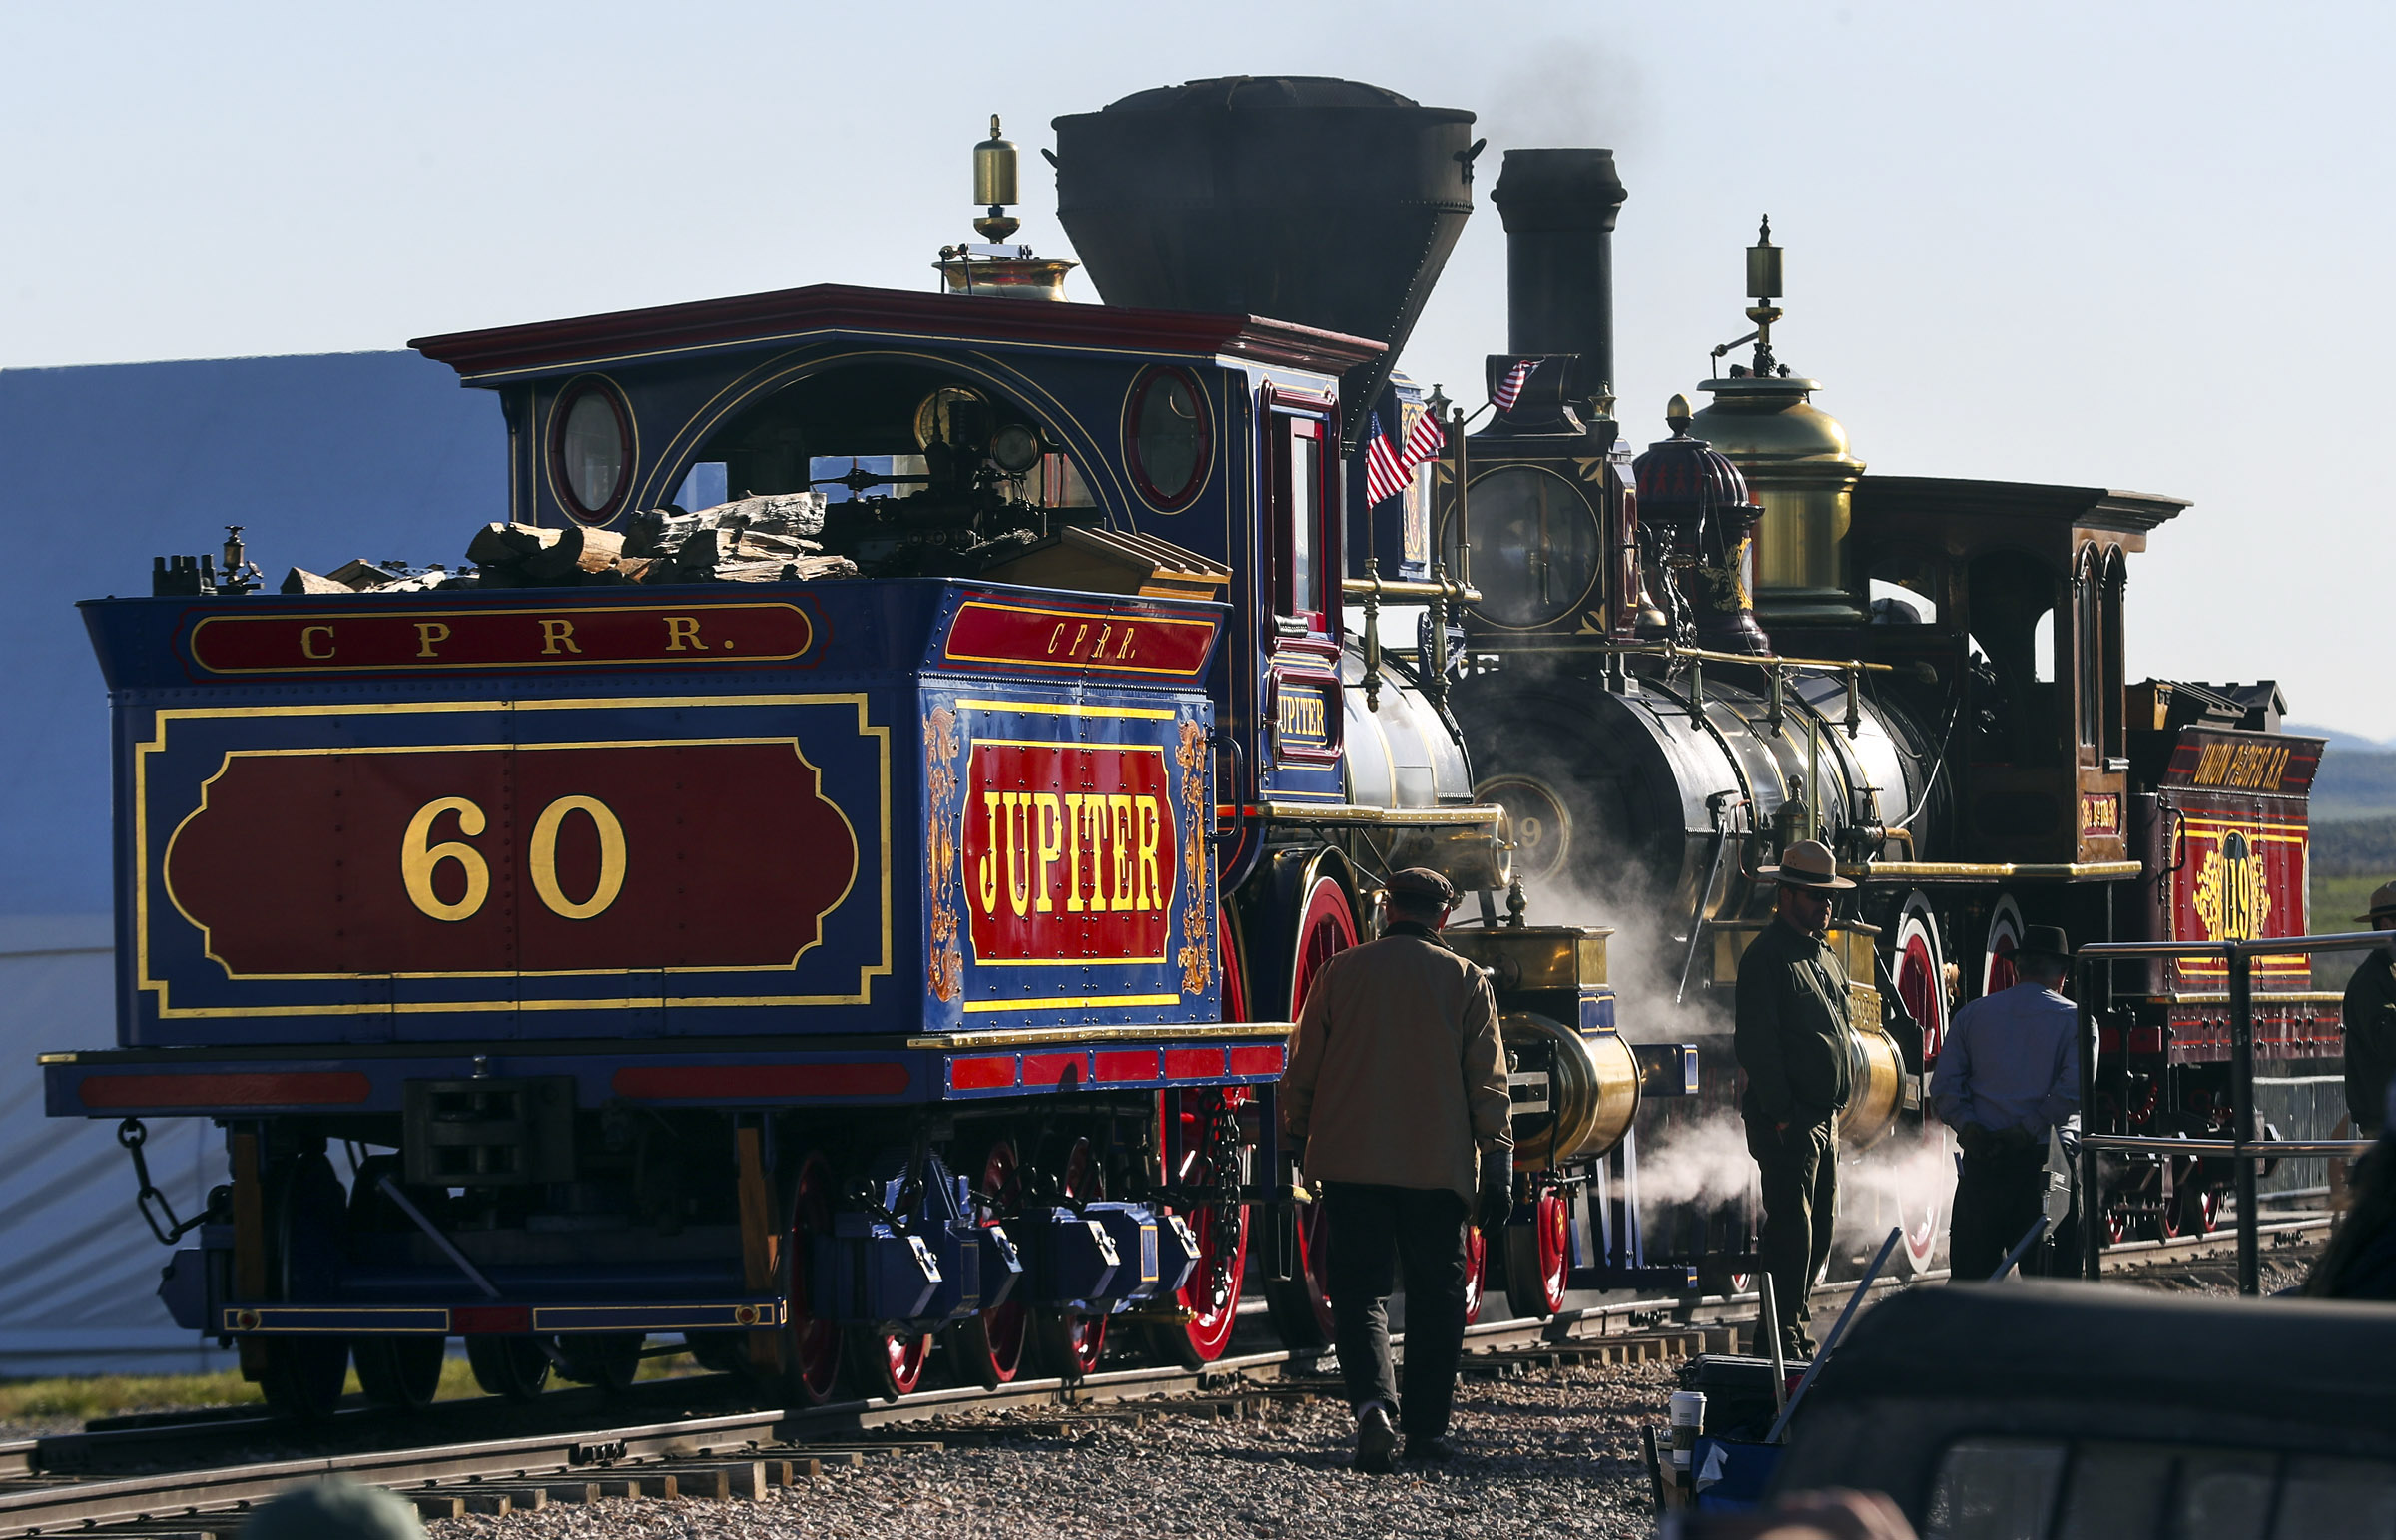 The Jupiter, Central Pacific's No. 60 and the Union Pacific No. 119 locomotives arrive during the Golden Spike Sesquicentennial Celebration and Festival at Promontory Summit on Friday, May 10, 2019.